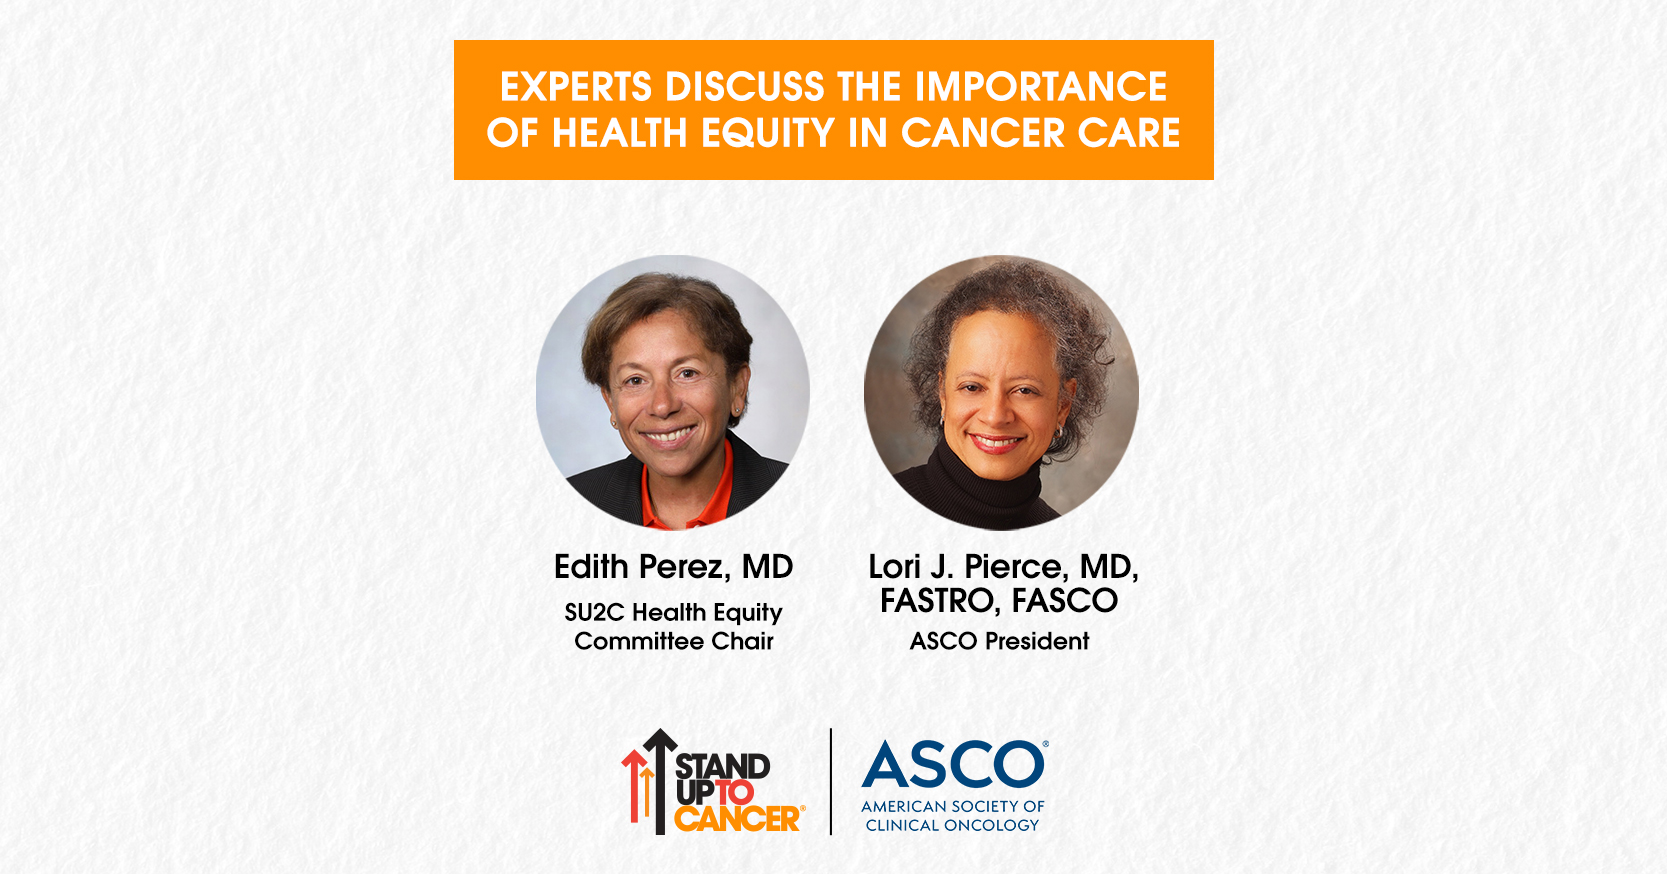 Addressing Health Equity in Cancer Research and Treatment